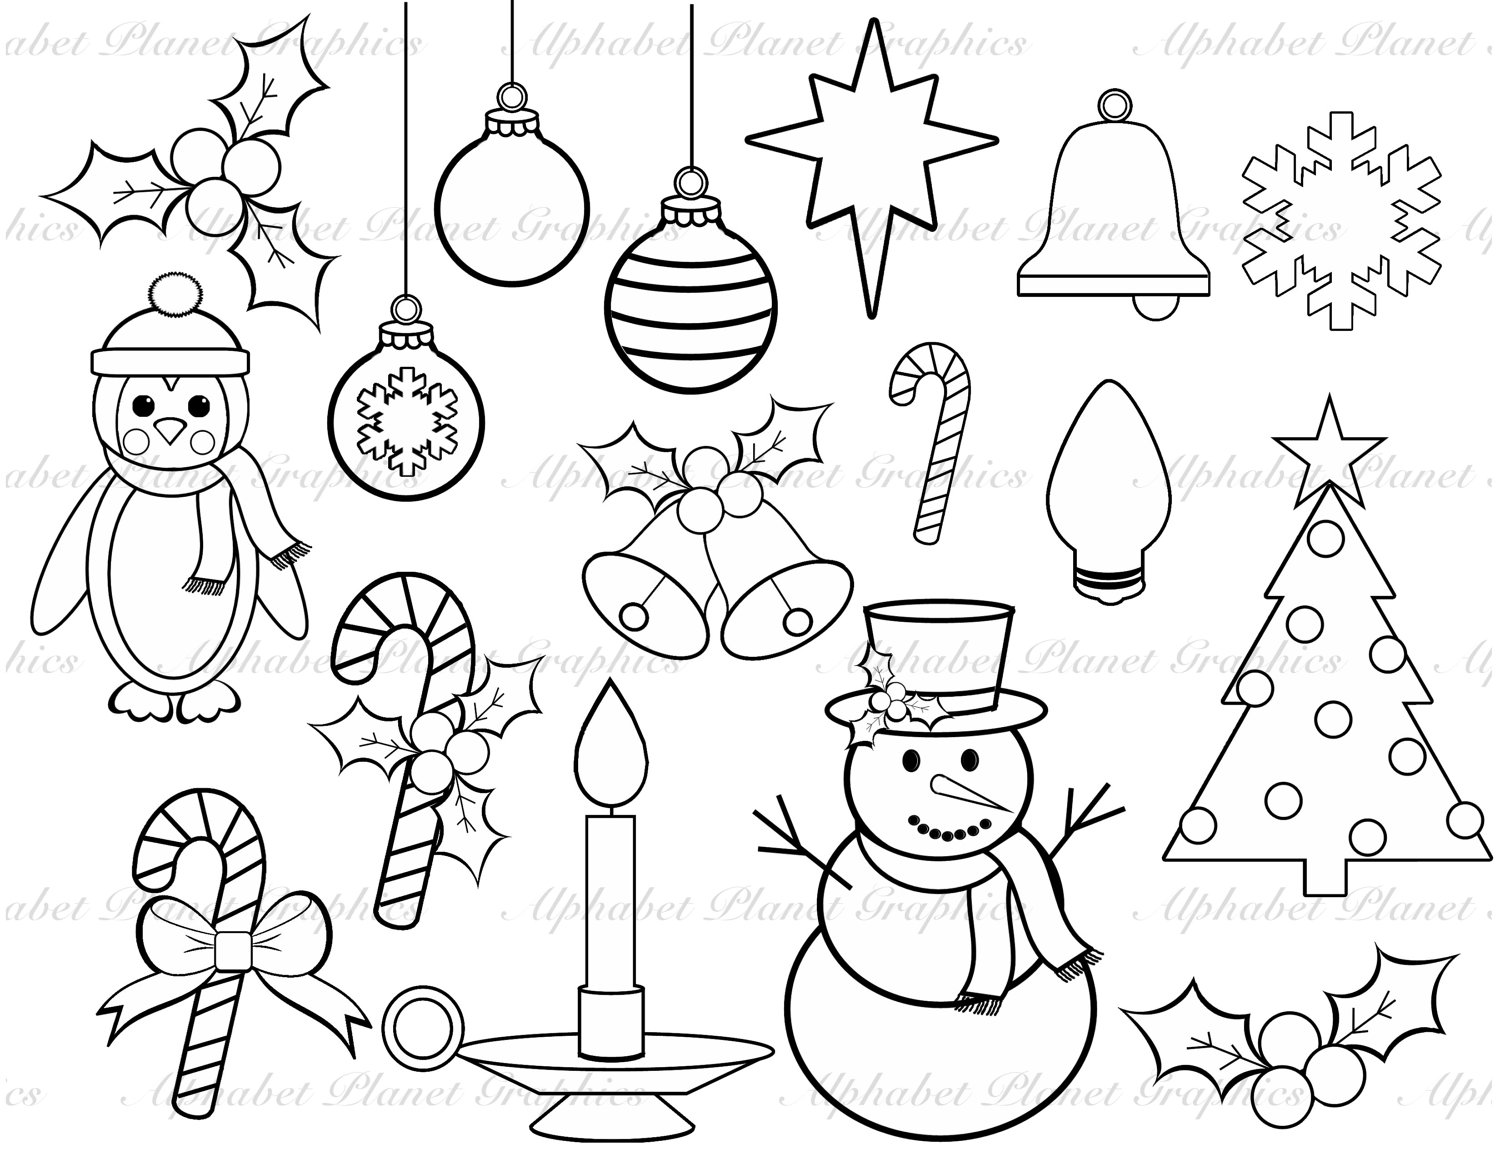 Christmas Images Clipart Black And White.Christmas Drawing Black And White At Getdrawings Com Free